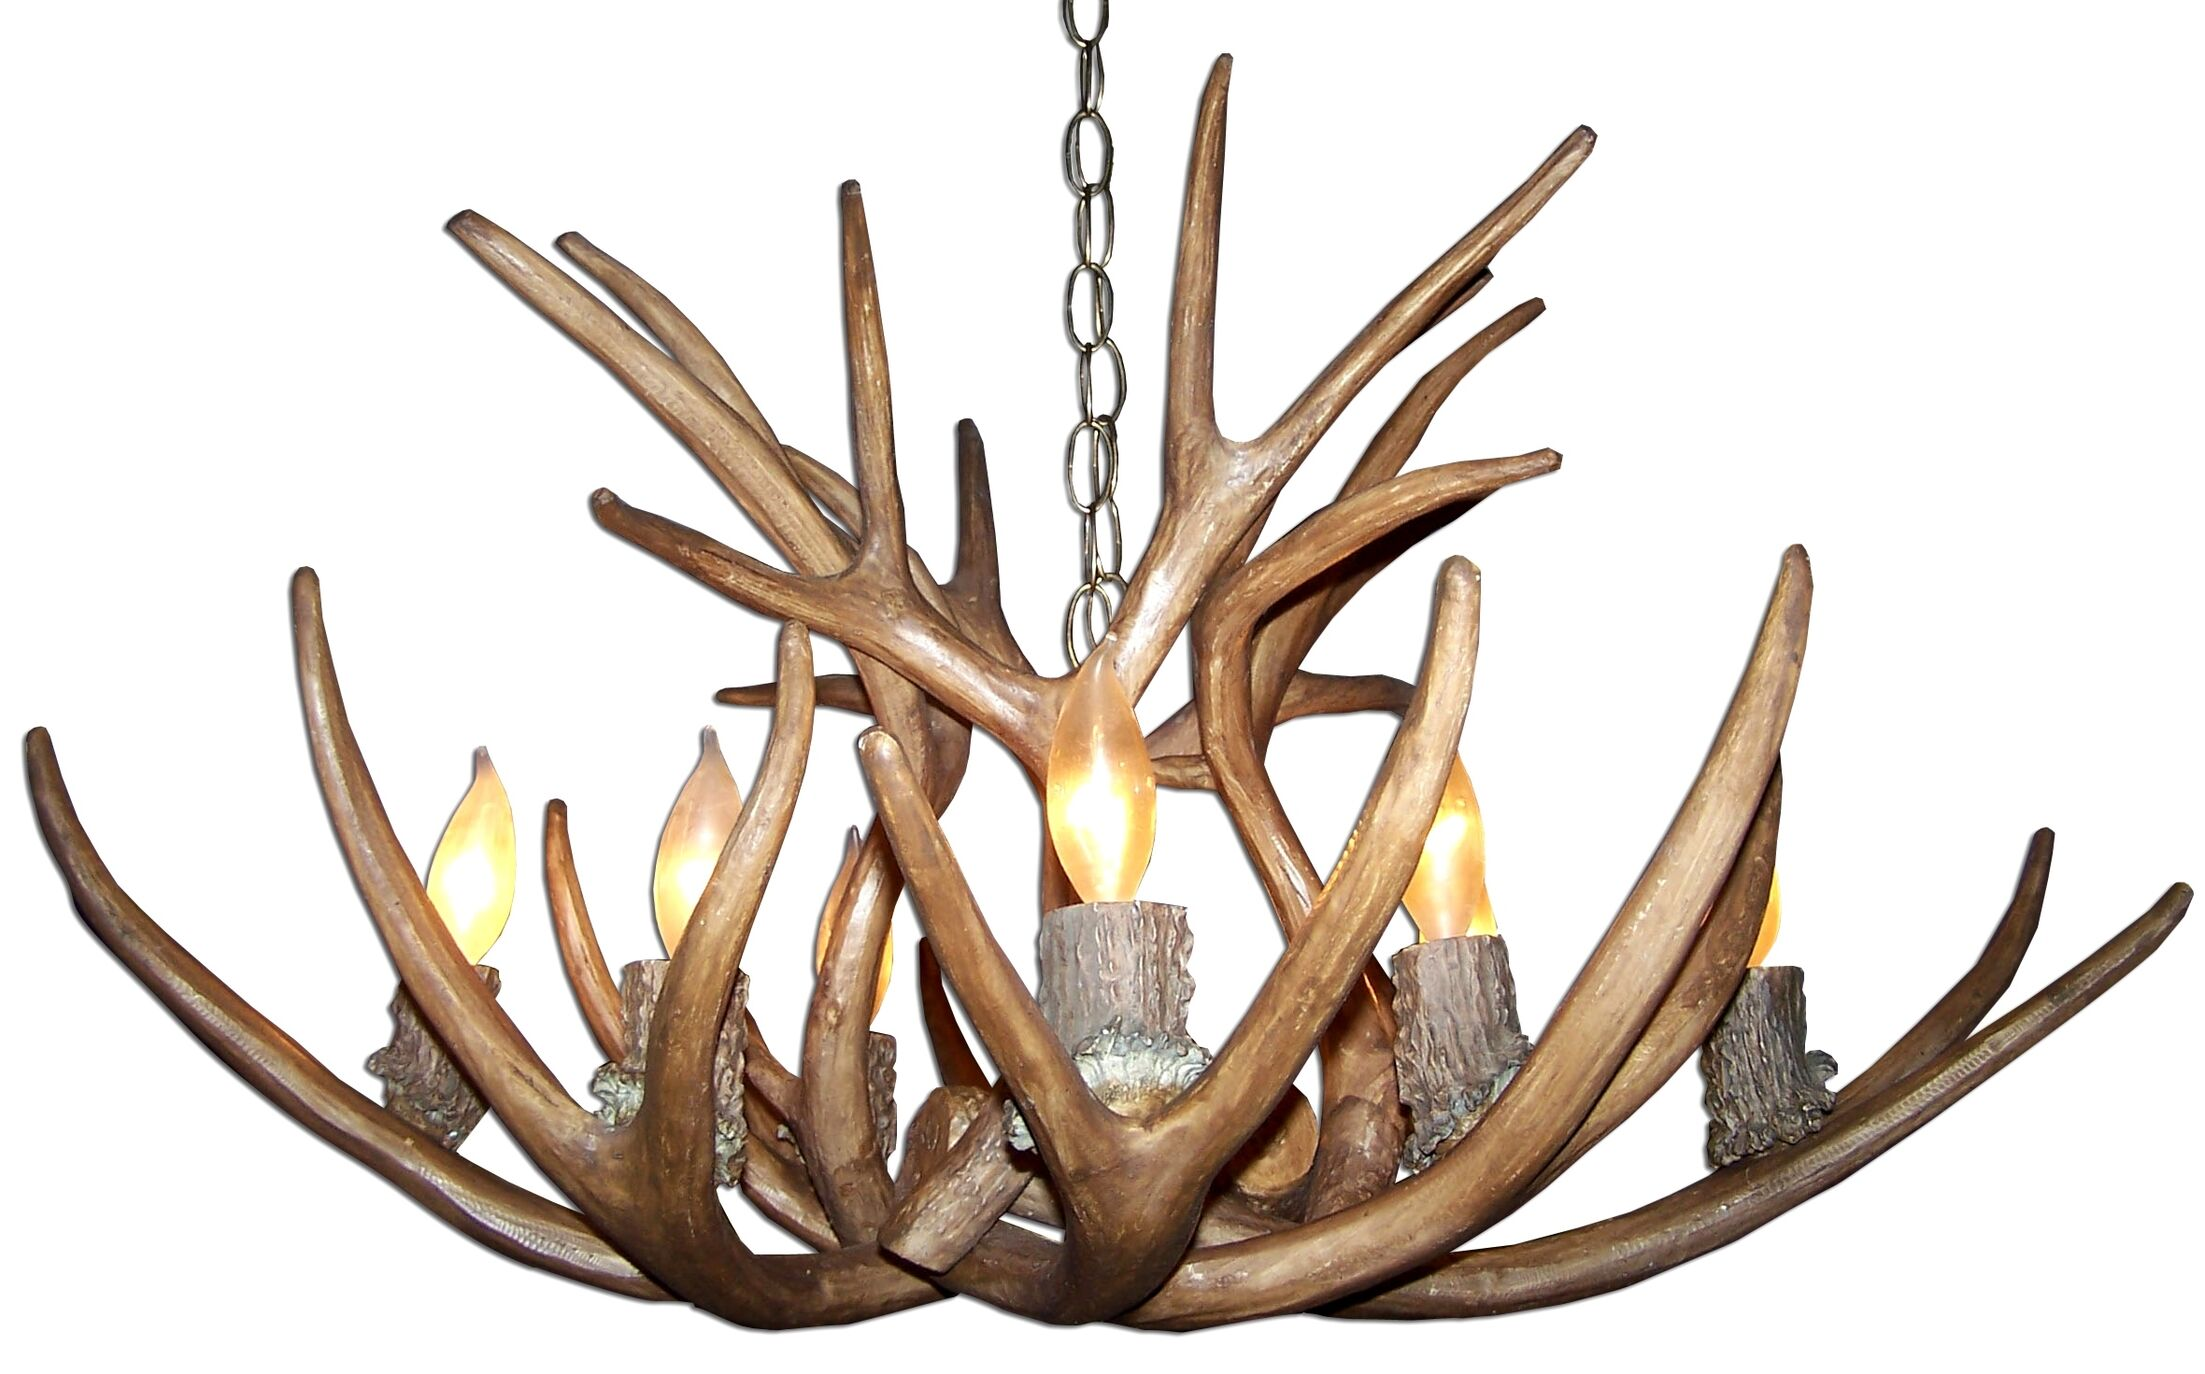 Attwood Antler Mule Deer 8-Light We have associated to option Chandelier Shade Included: No, Shade Color: No Shade, Finish: Rustic Bronze/Brown